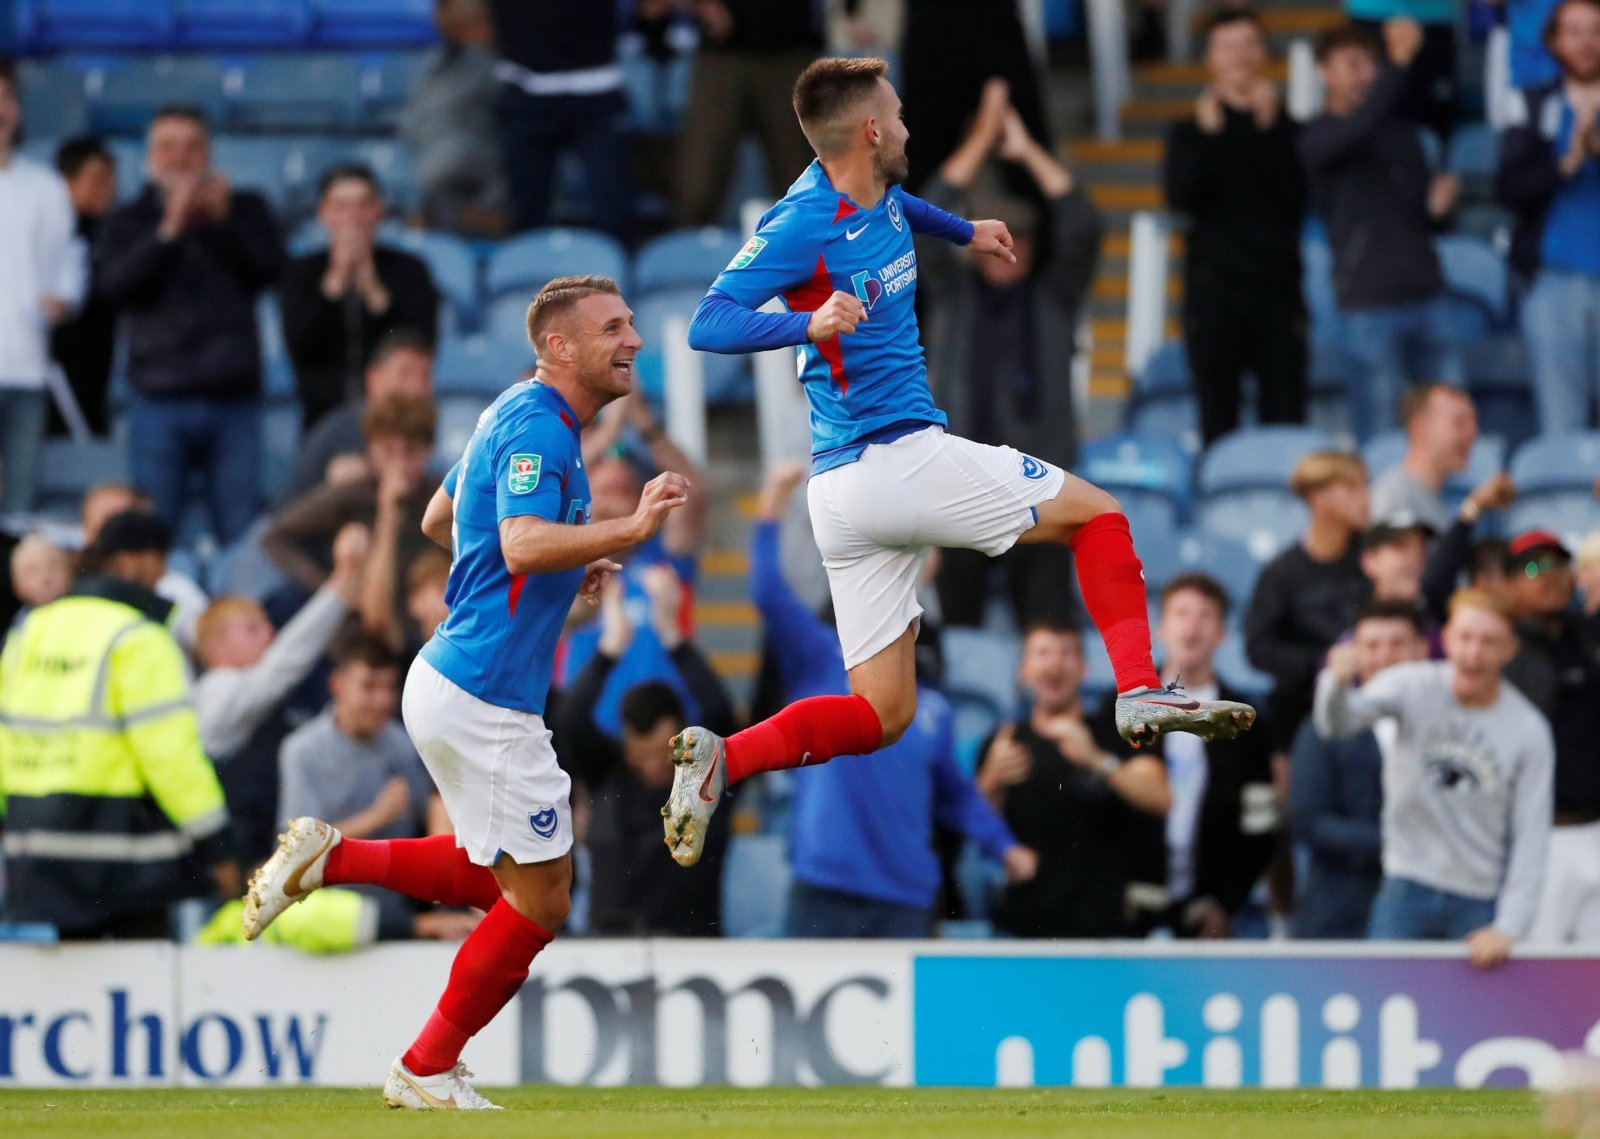 Portsmouth: Ben Close nominated for League One Goal of the Month award for August